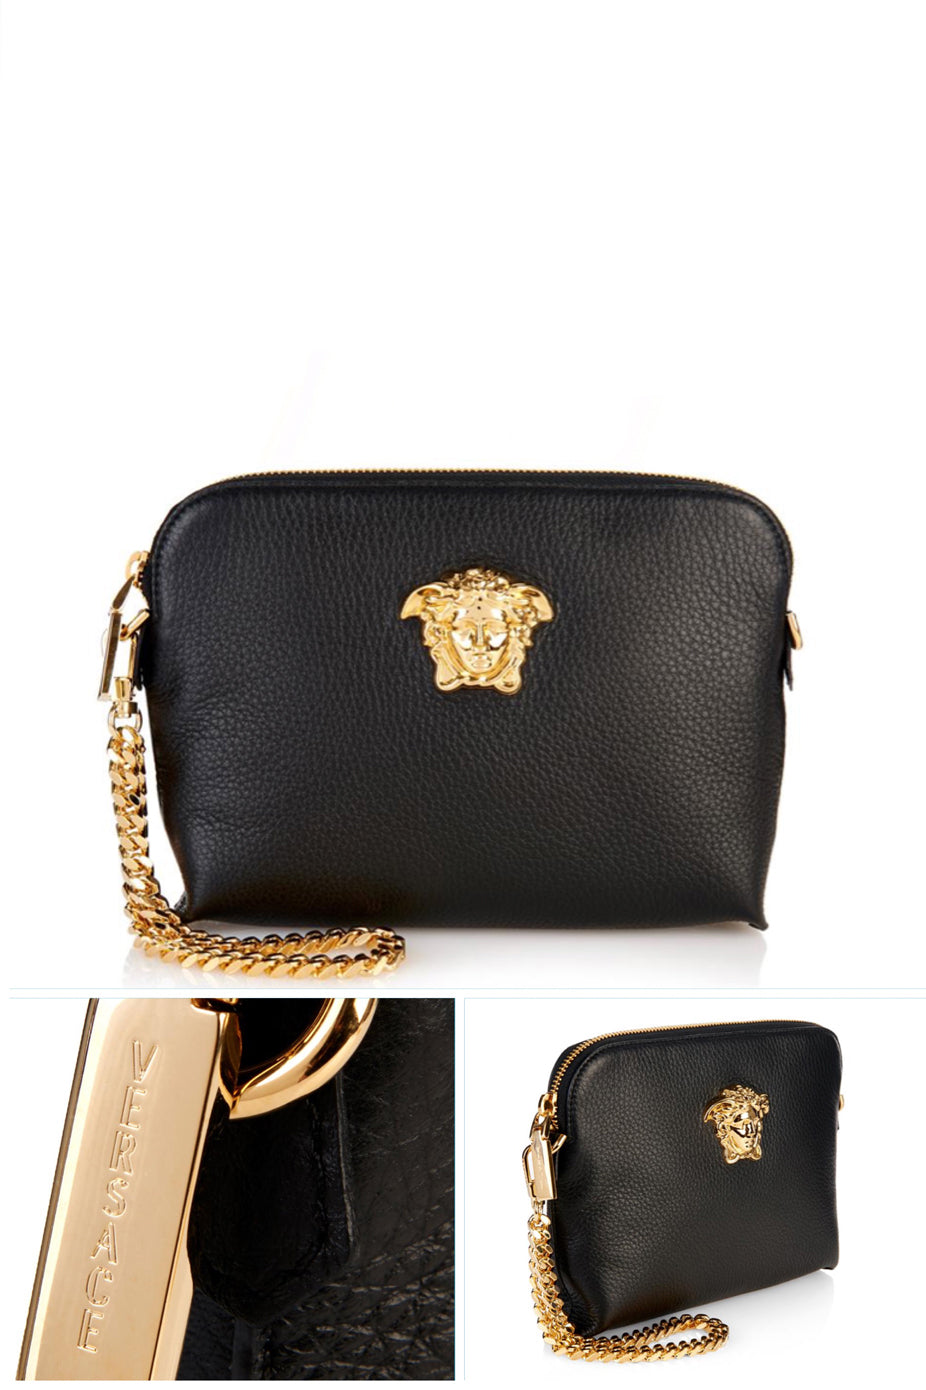 LEATHER CLUTCH by Versace